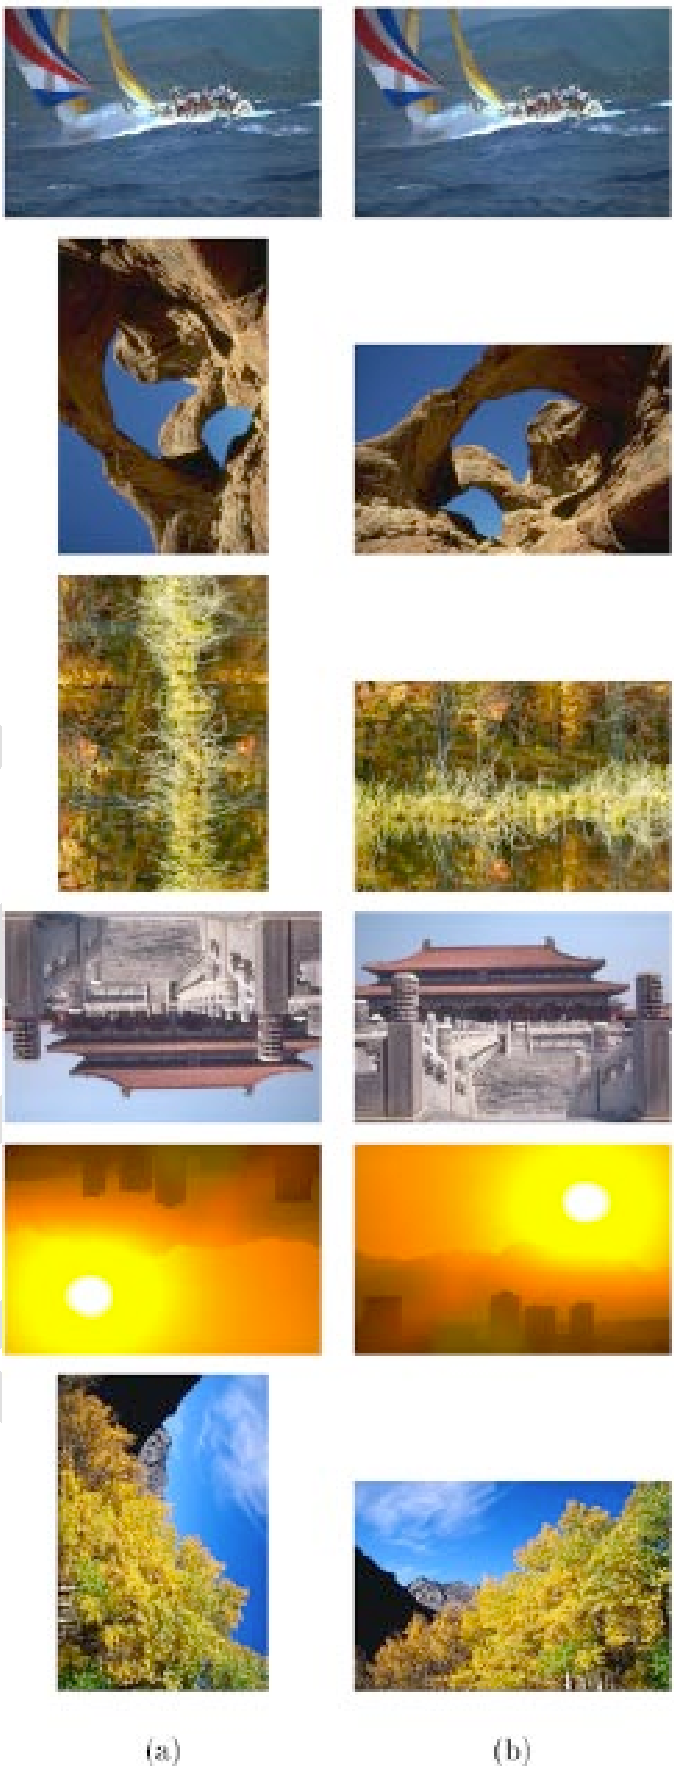 Fig. 7. Subset of images in the database whose orientations were correctly detected. (a) Input images and (b) detected orientations.